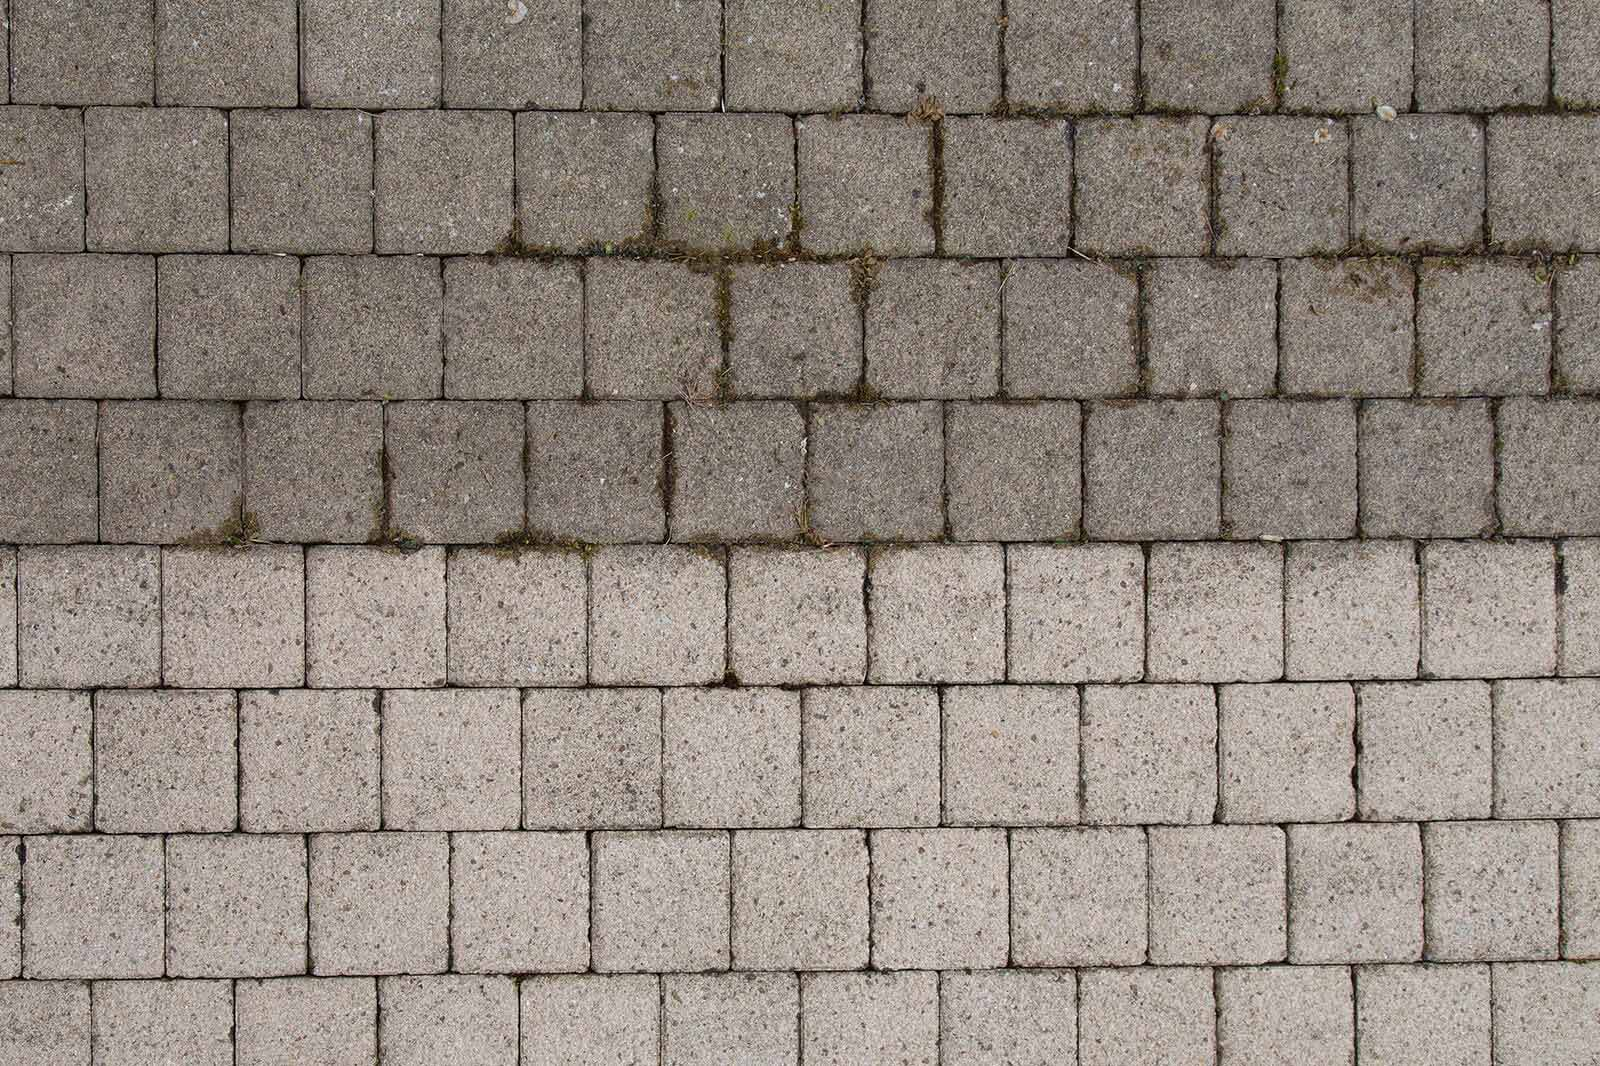 How To Properly Clean Paving Stone Surfaces